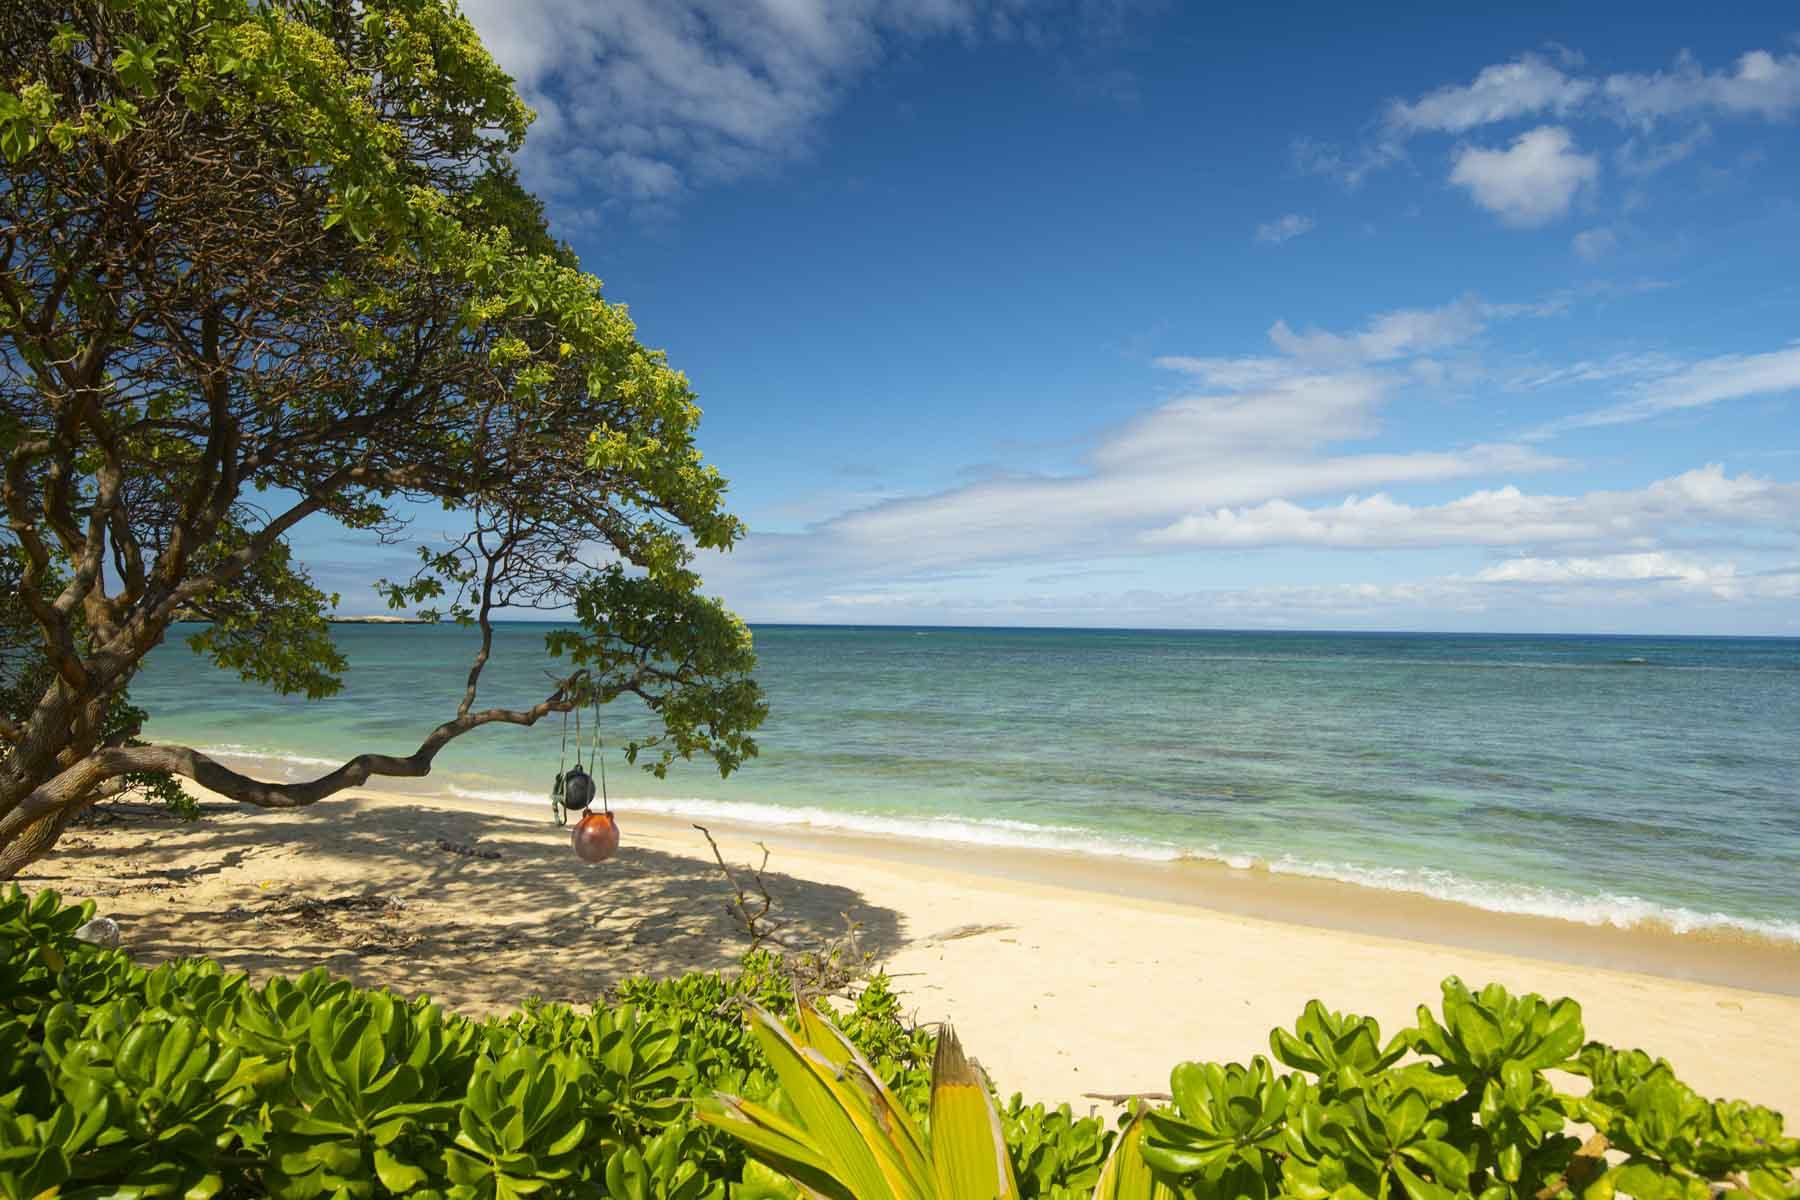 View of beachfront from the private lawn of the home.